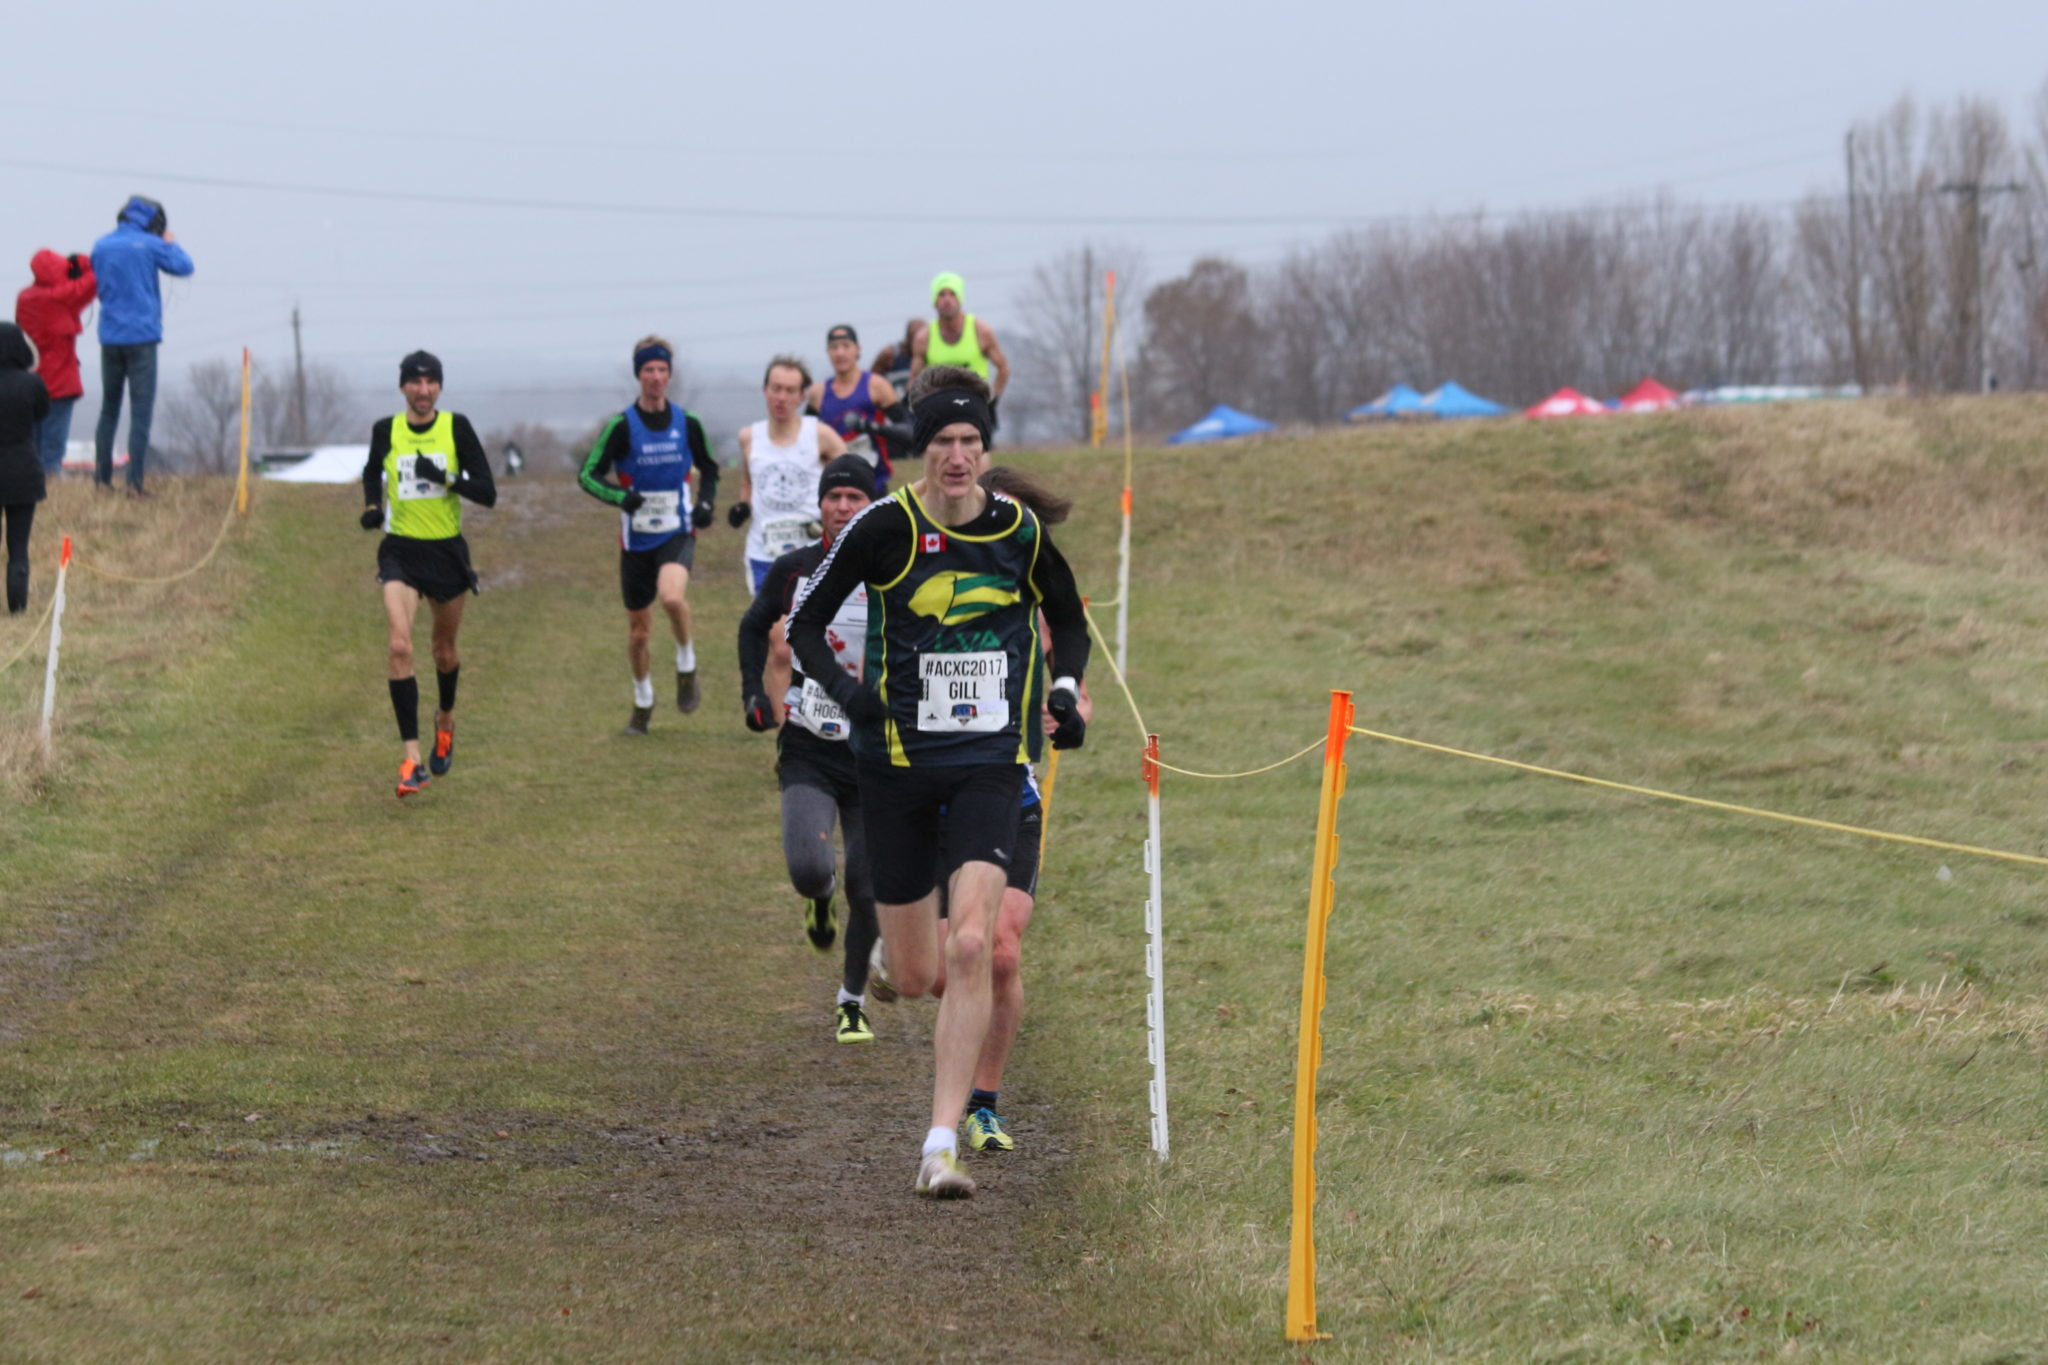 The front group splinters as Mike pushes the pace,